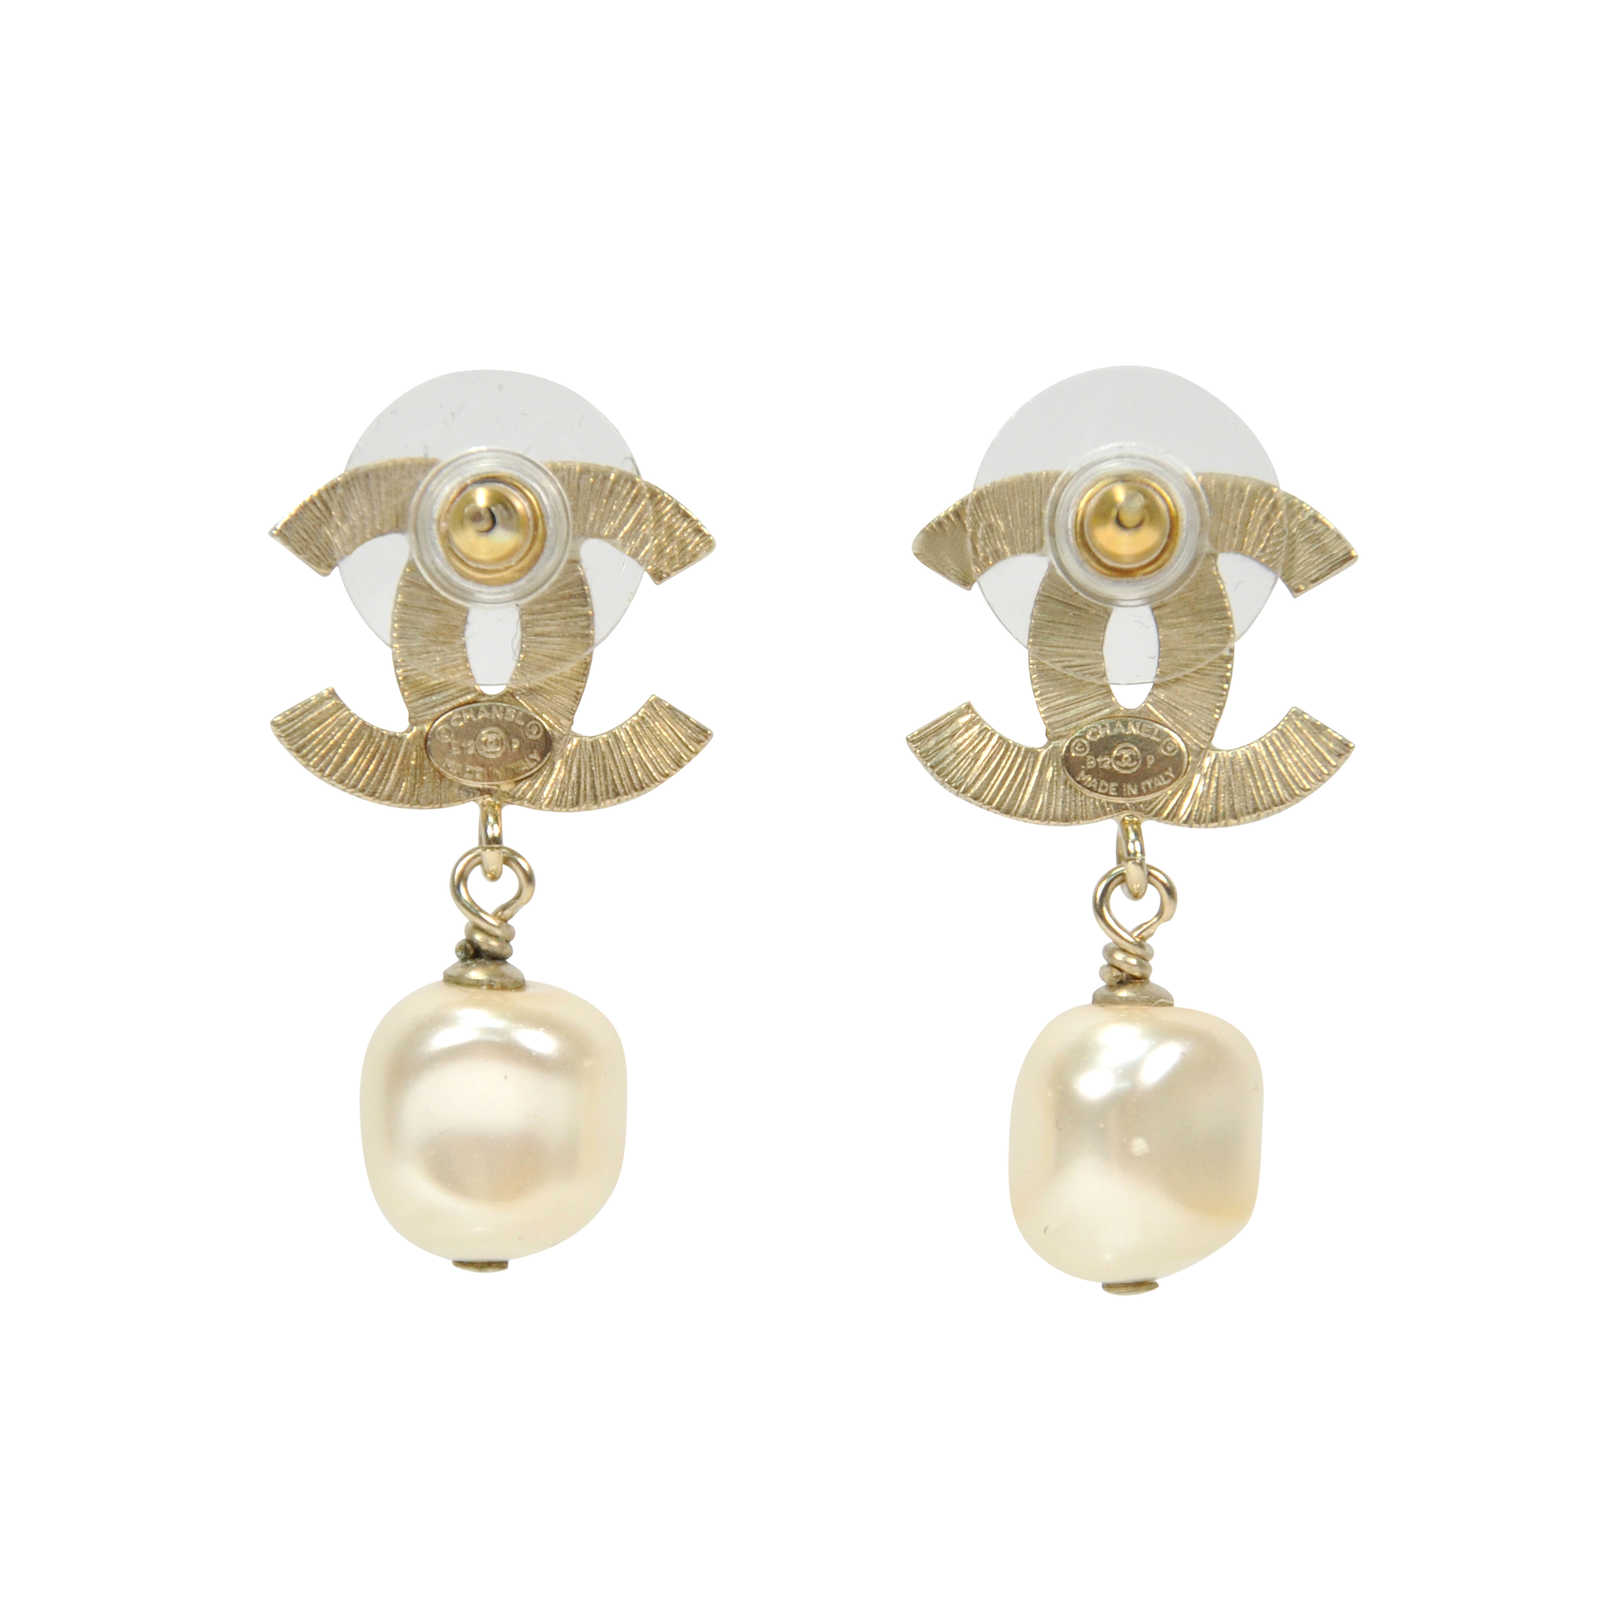 Authentic Pre Owned Chanel Cc Pearl Drop Earrings Pss 304 00012